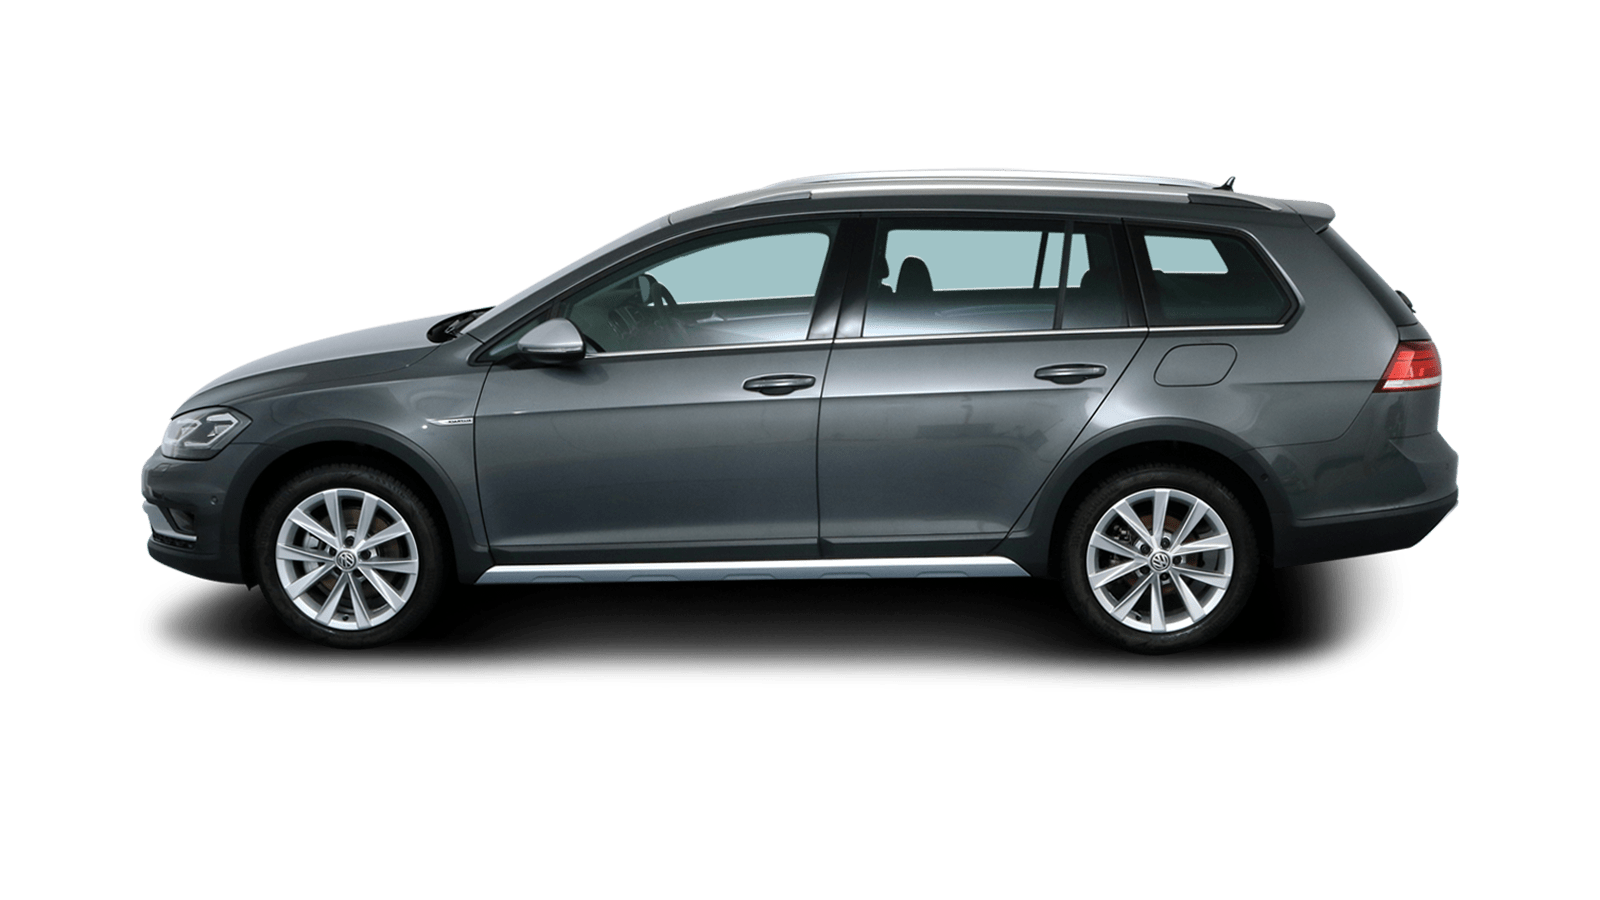 VW Golf Variant Alltrack Grey back - Clyde car subscription